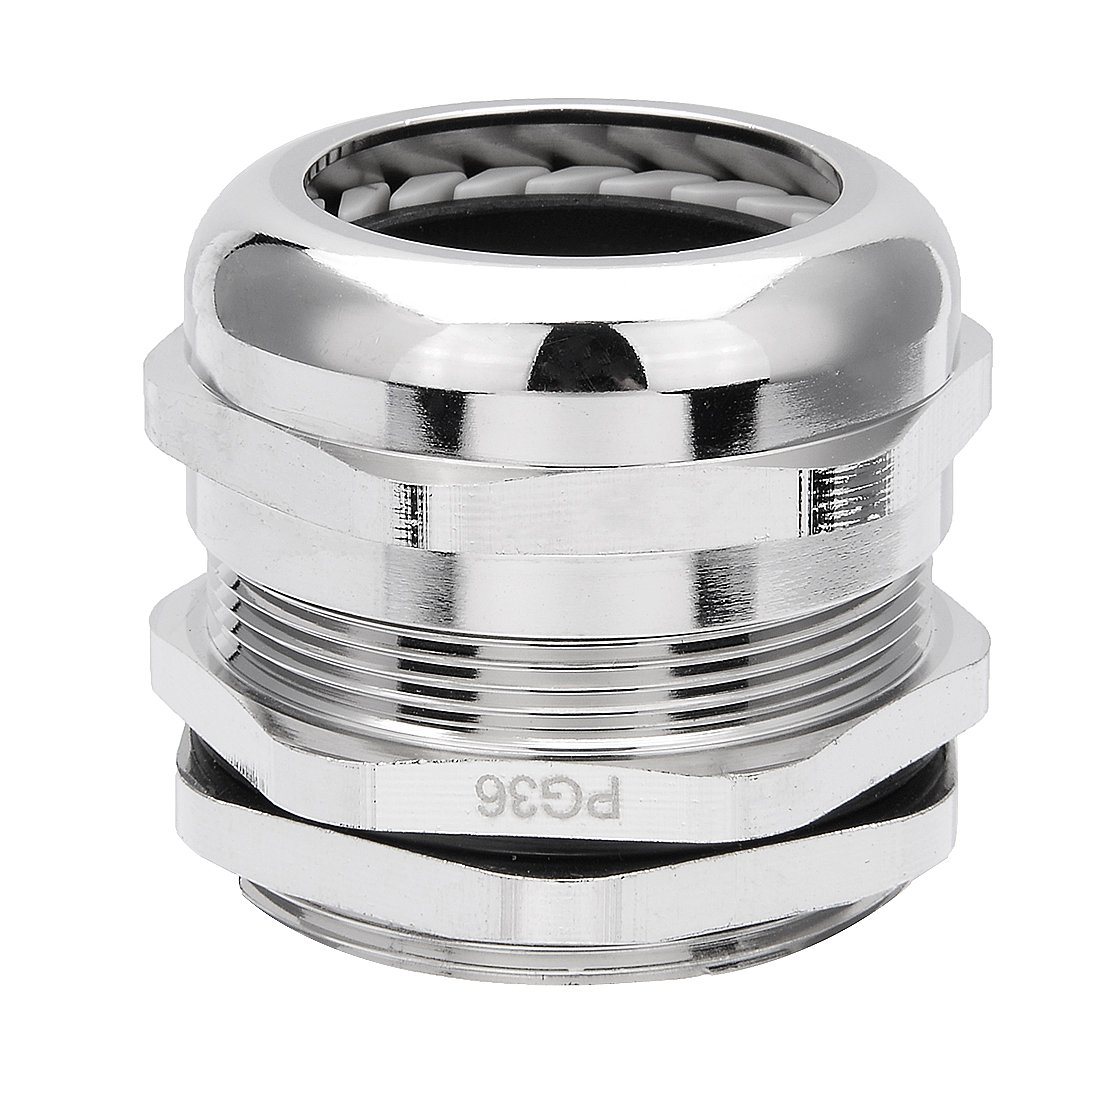 uxcell Cable Gland PG36 Metal Waterproof Cable Glands Joints Adjustable Connector for 25-33mm Dia Cable